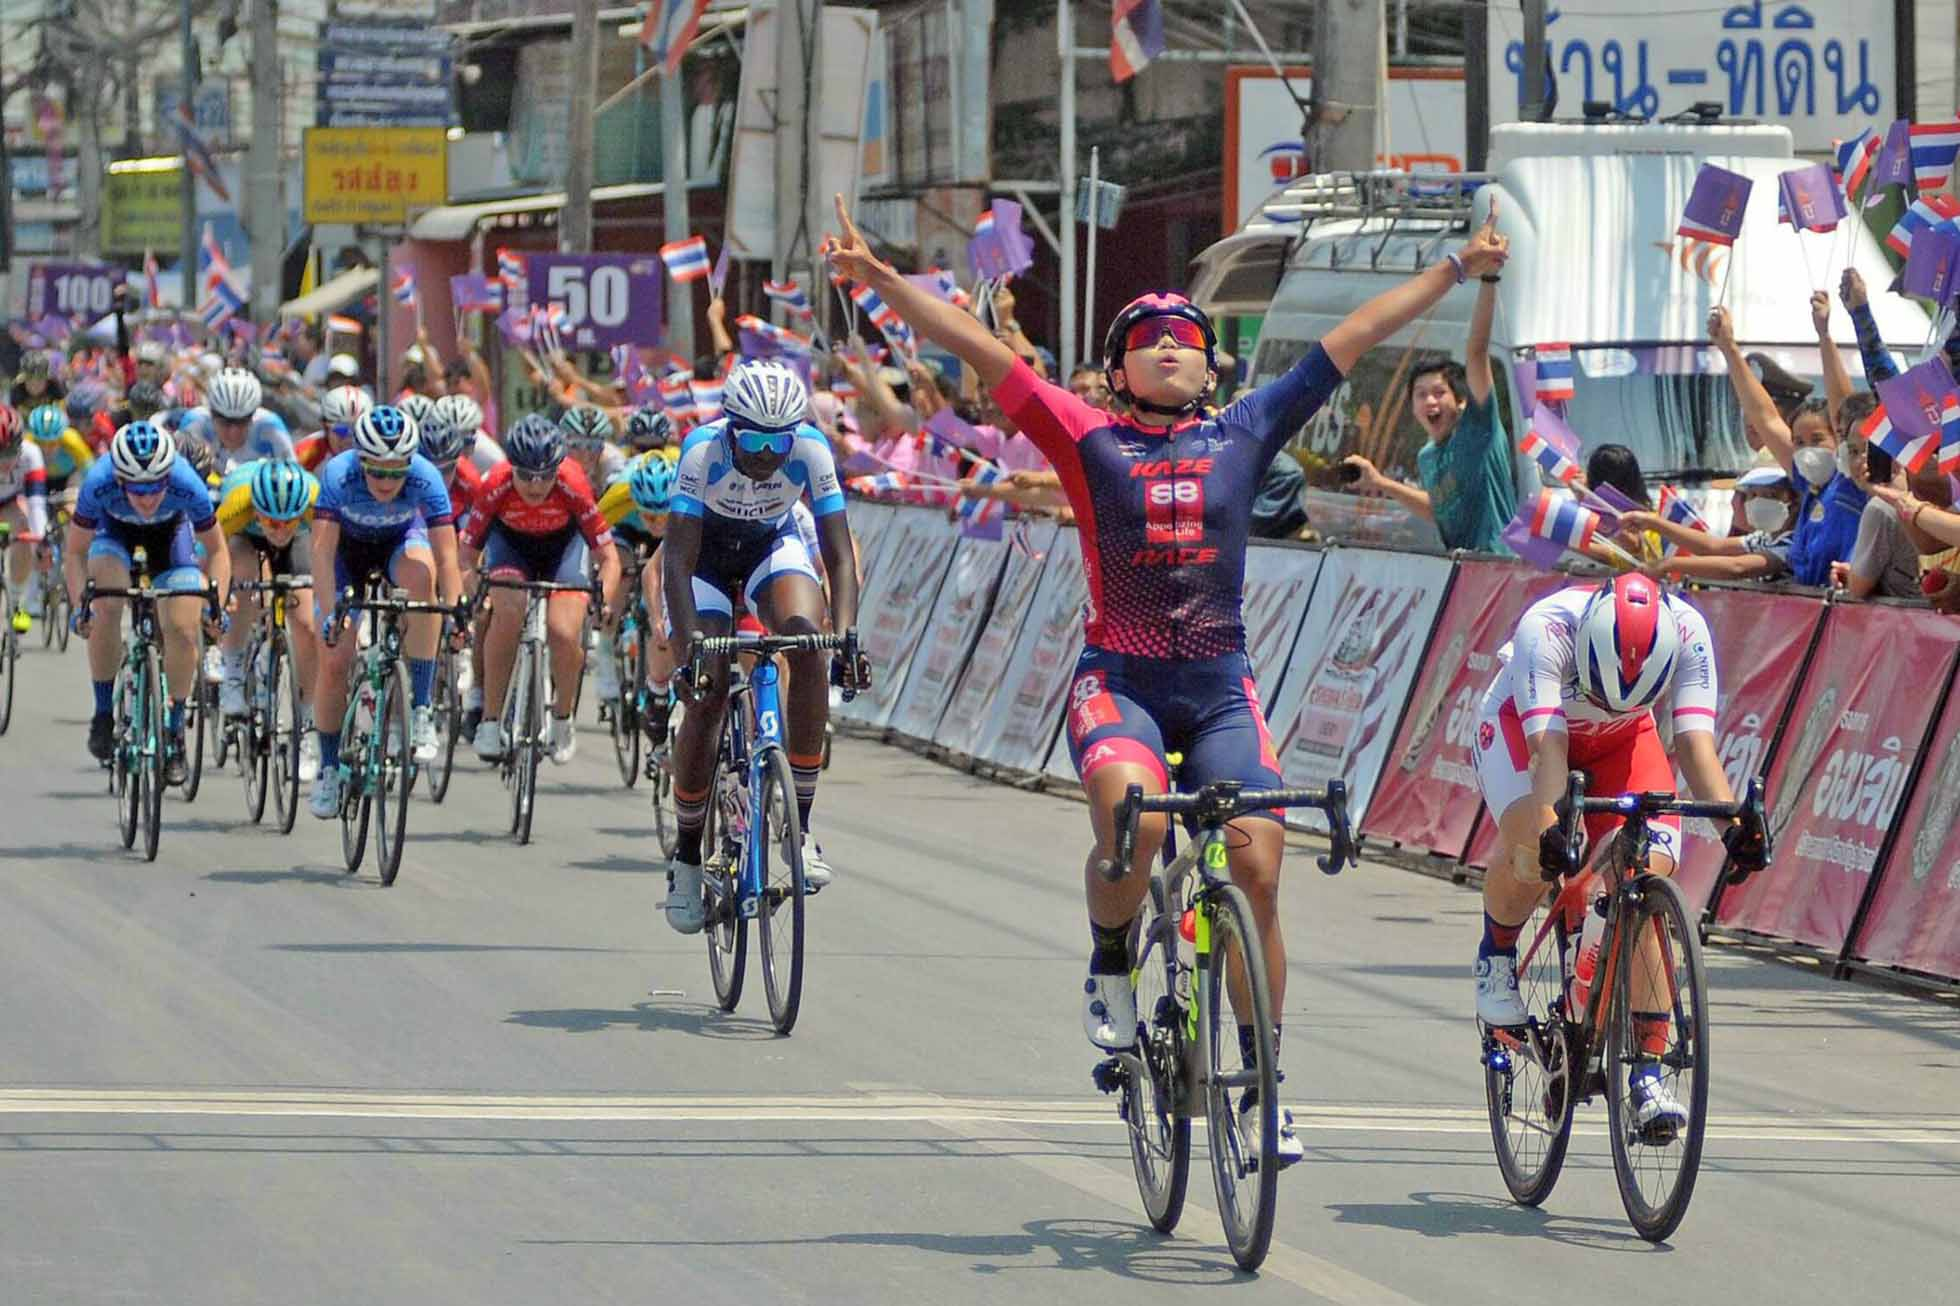 The Princess Maha Chakri Sirindhorn's Cup Women's Tour of Thailand 2019